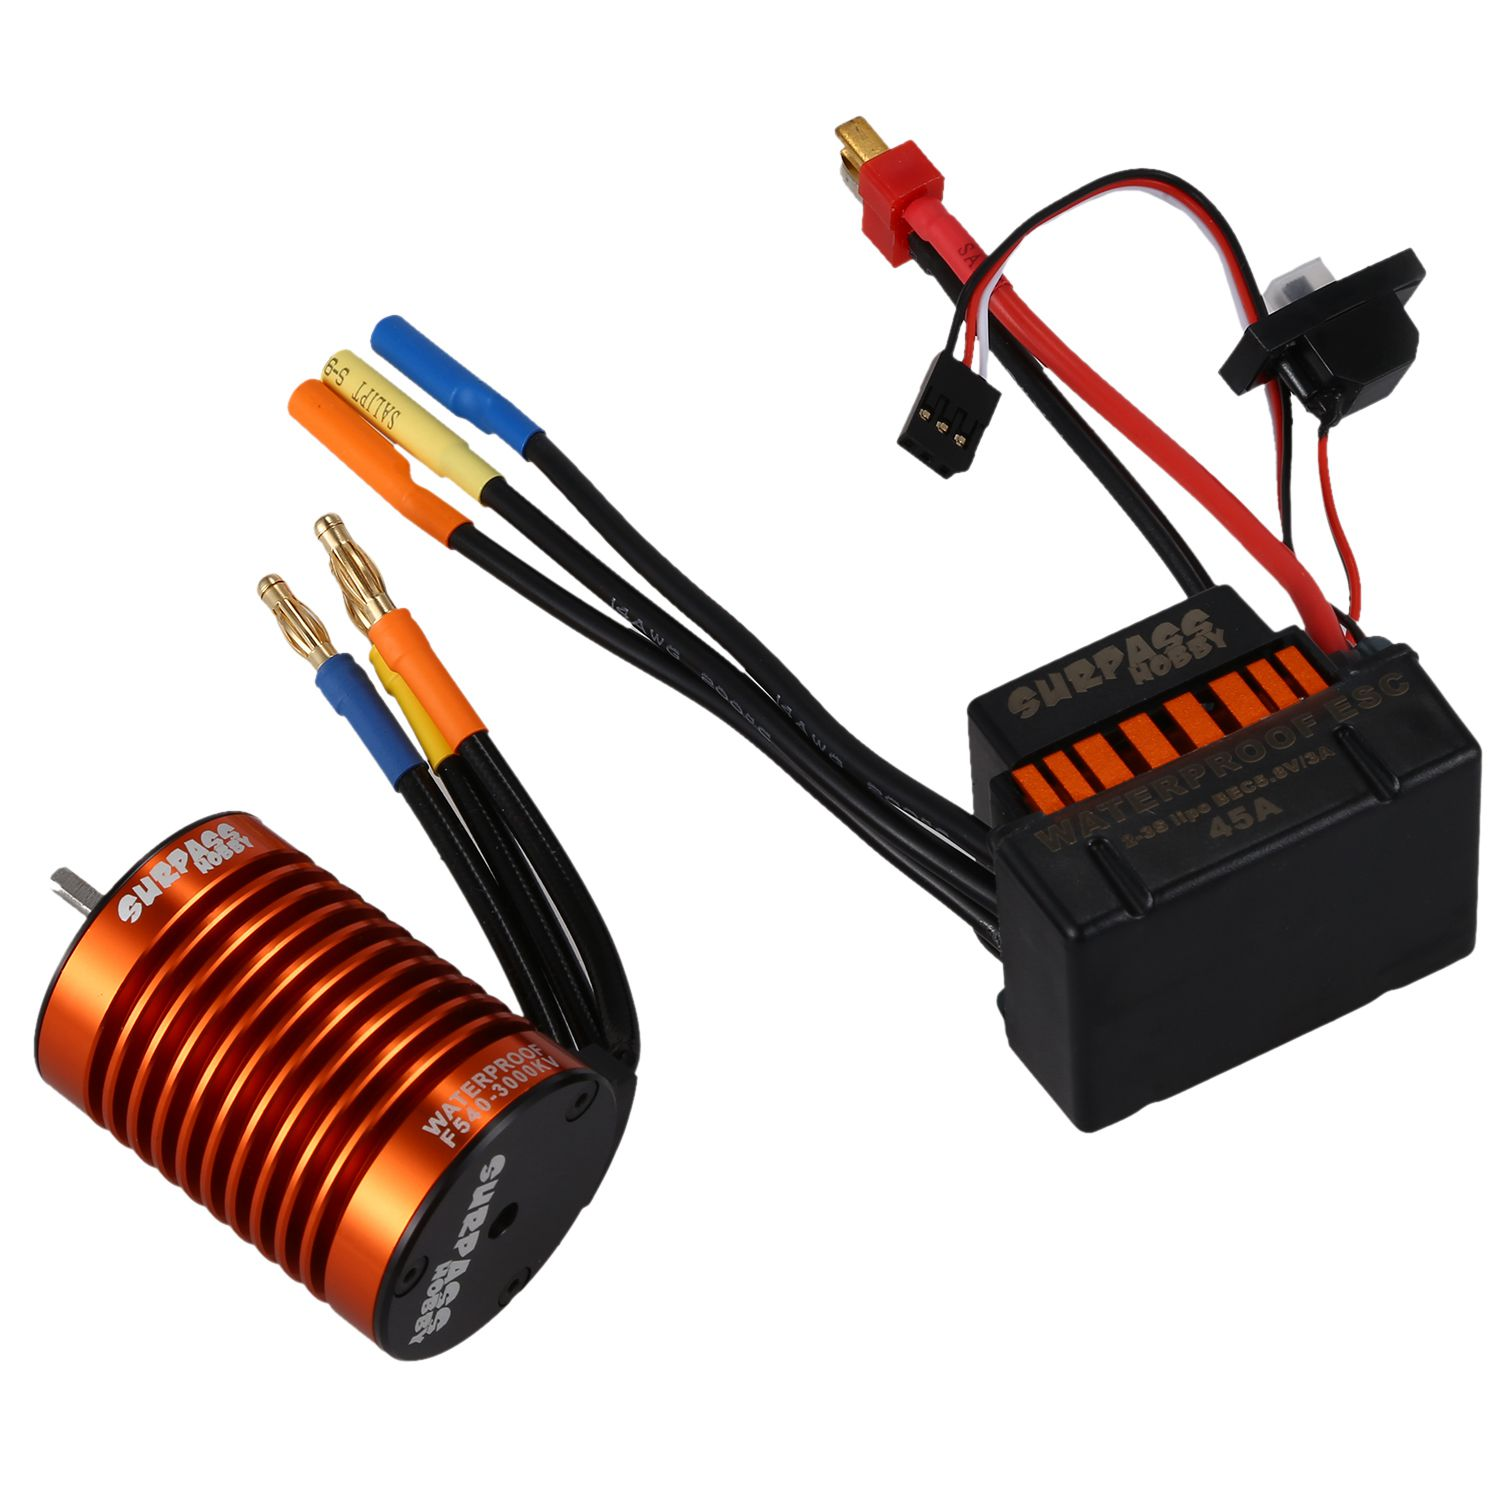 SURPASS HOBBY Upgrade Waterproof F540 3000KV Brushless Motor with 45A ESC Combo Set for 1/10 RC Car Truck surpass hobby upgrade waterproof 3650 3900kv rc brushless motor with 60a esc combo set for 1 10 rc car truck motor kit